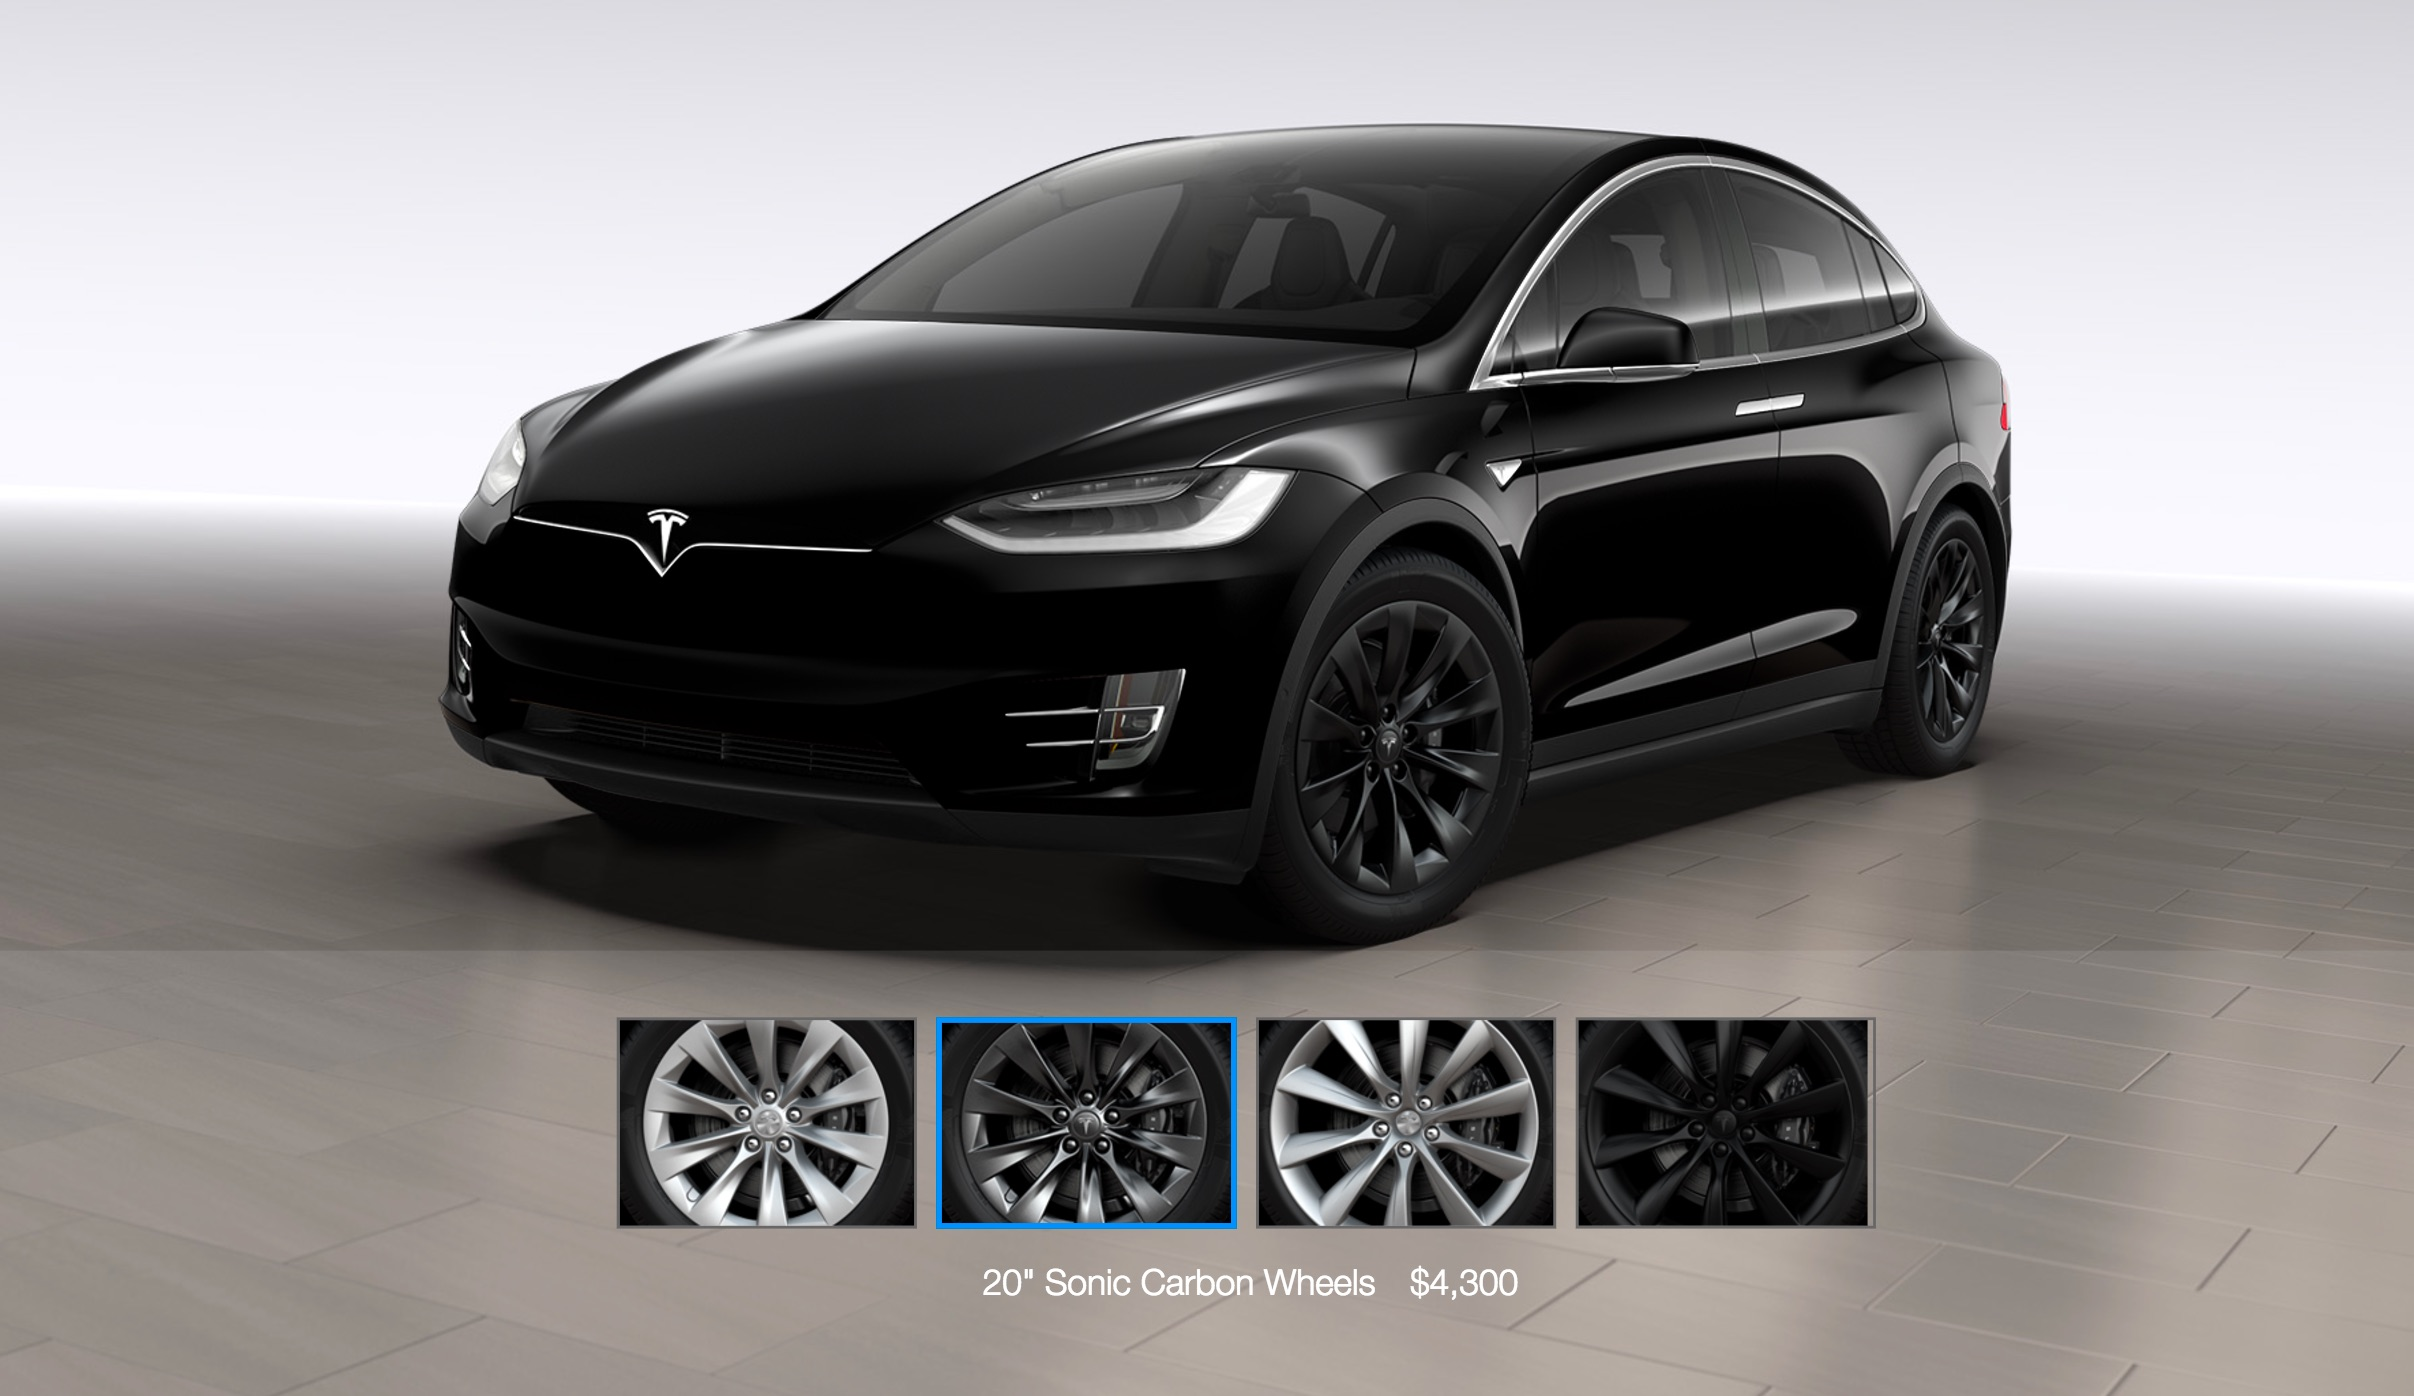 tesla-model-x-sonic-carbon-wheels-2